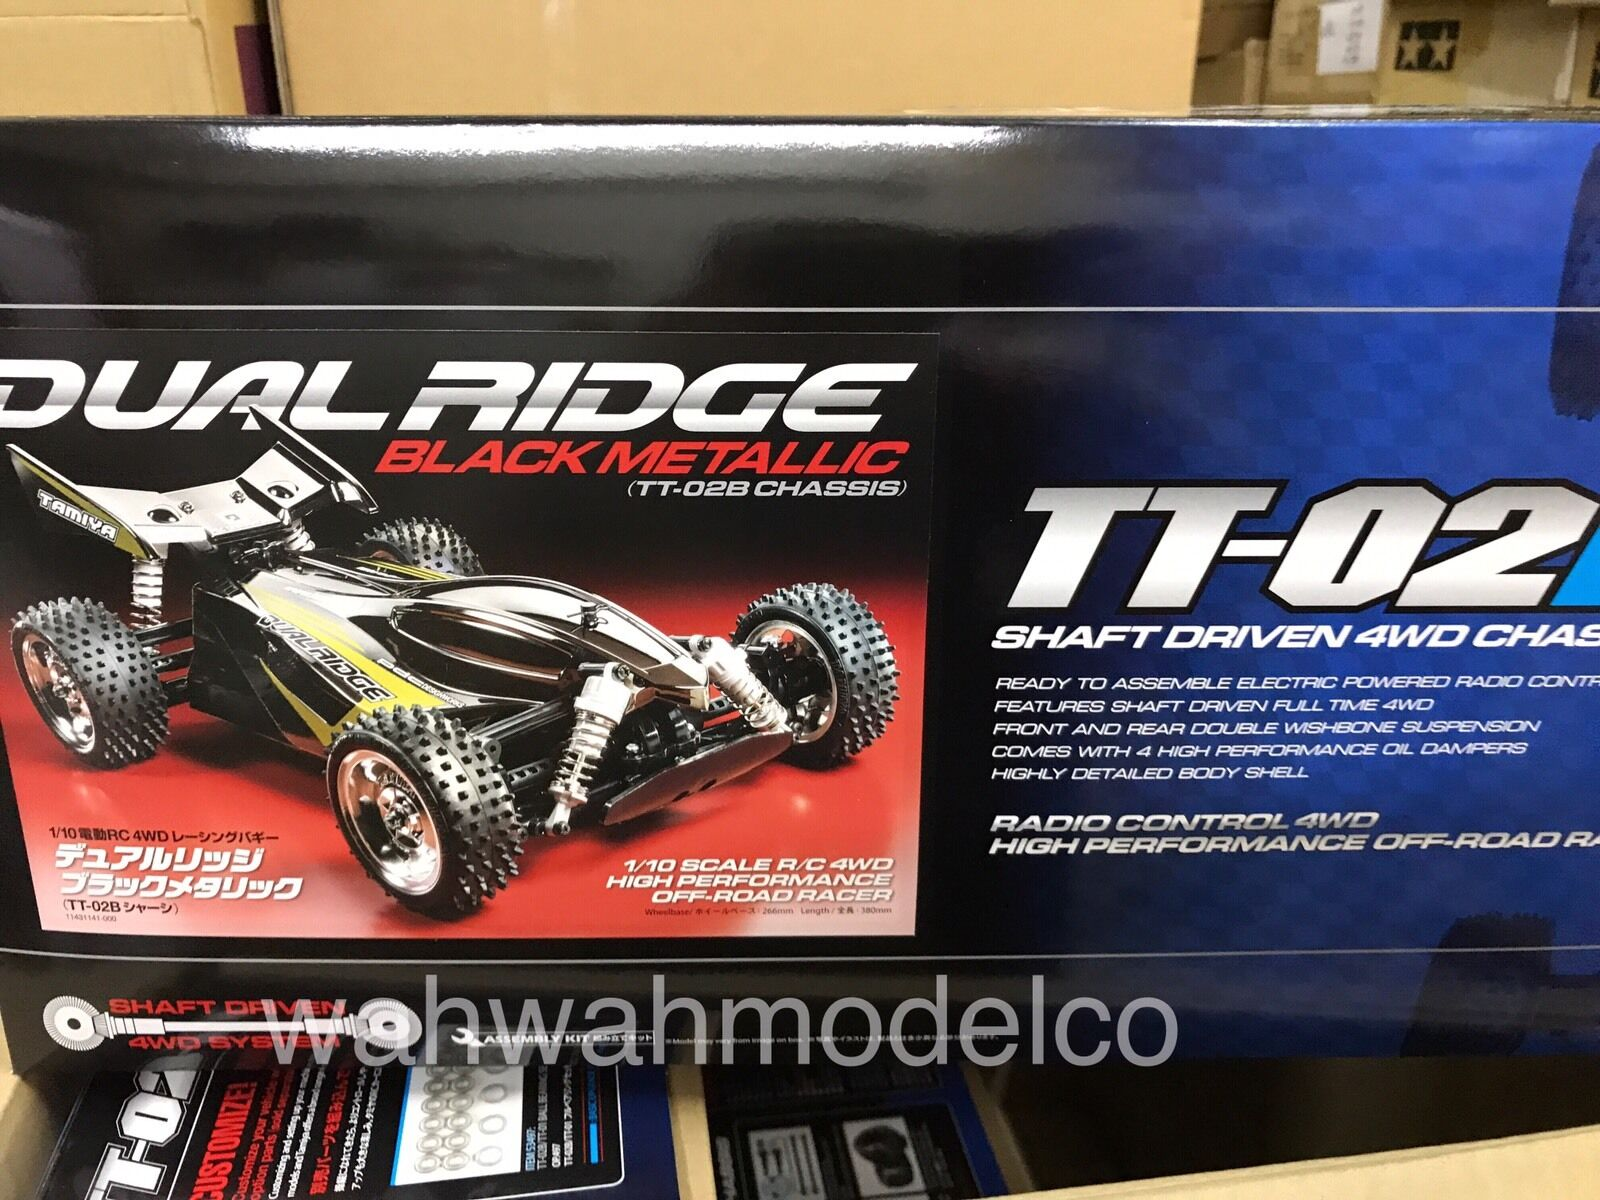 Tamiya RC Special 1/10 electric RC car Dual ridge metallic TT-02B 47355